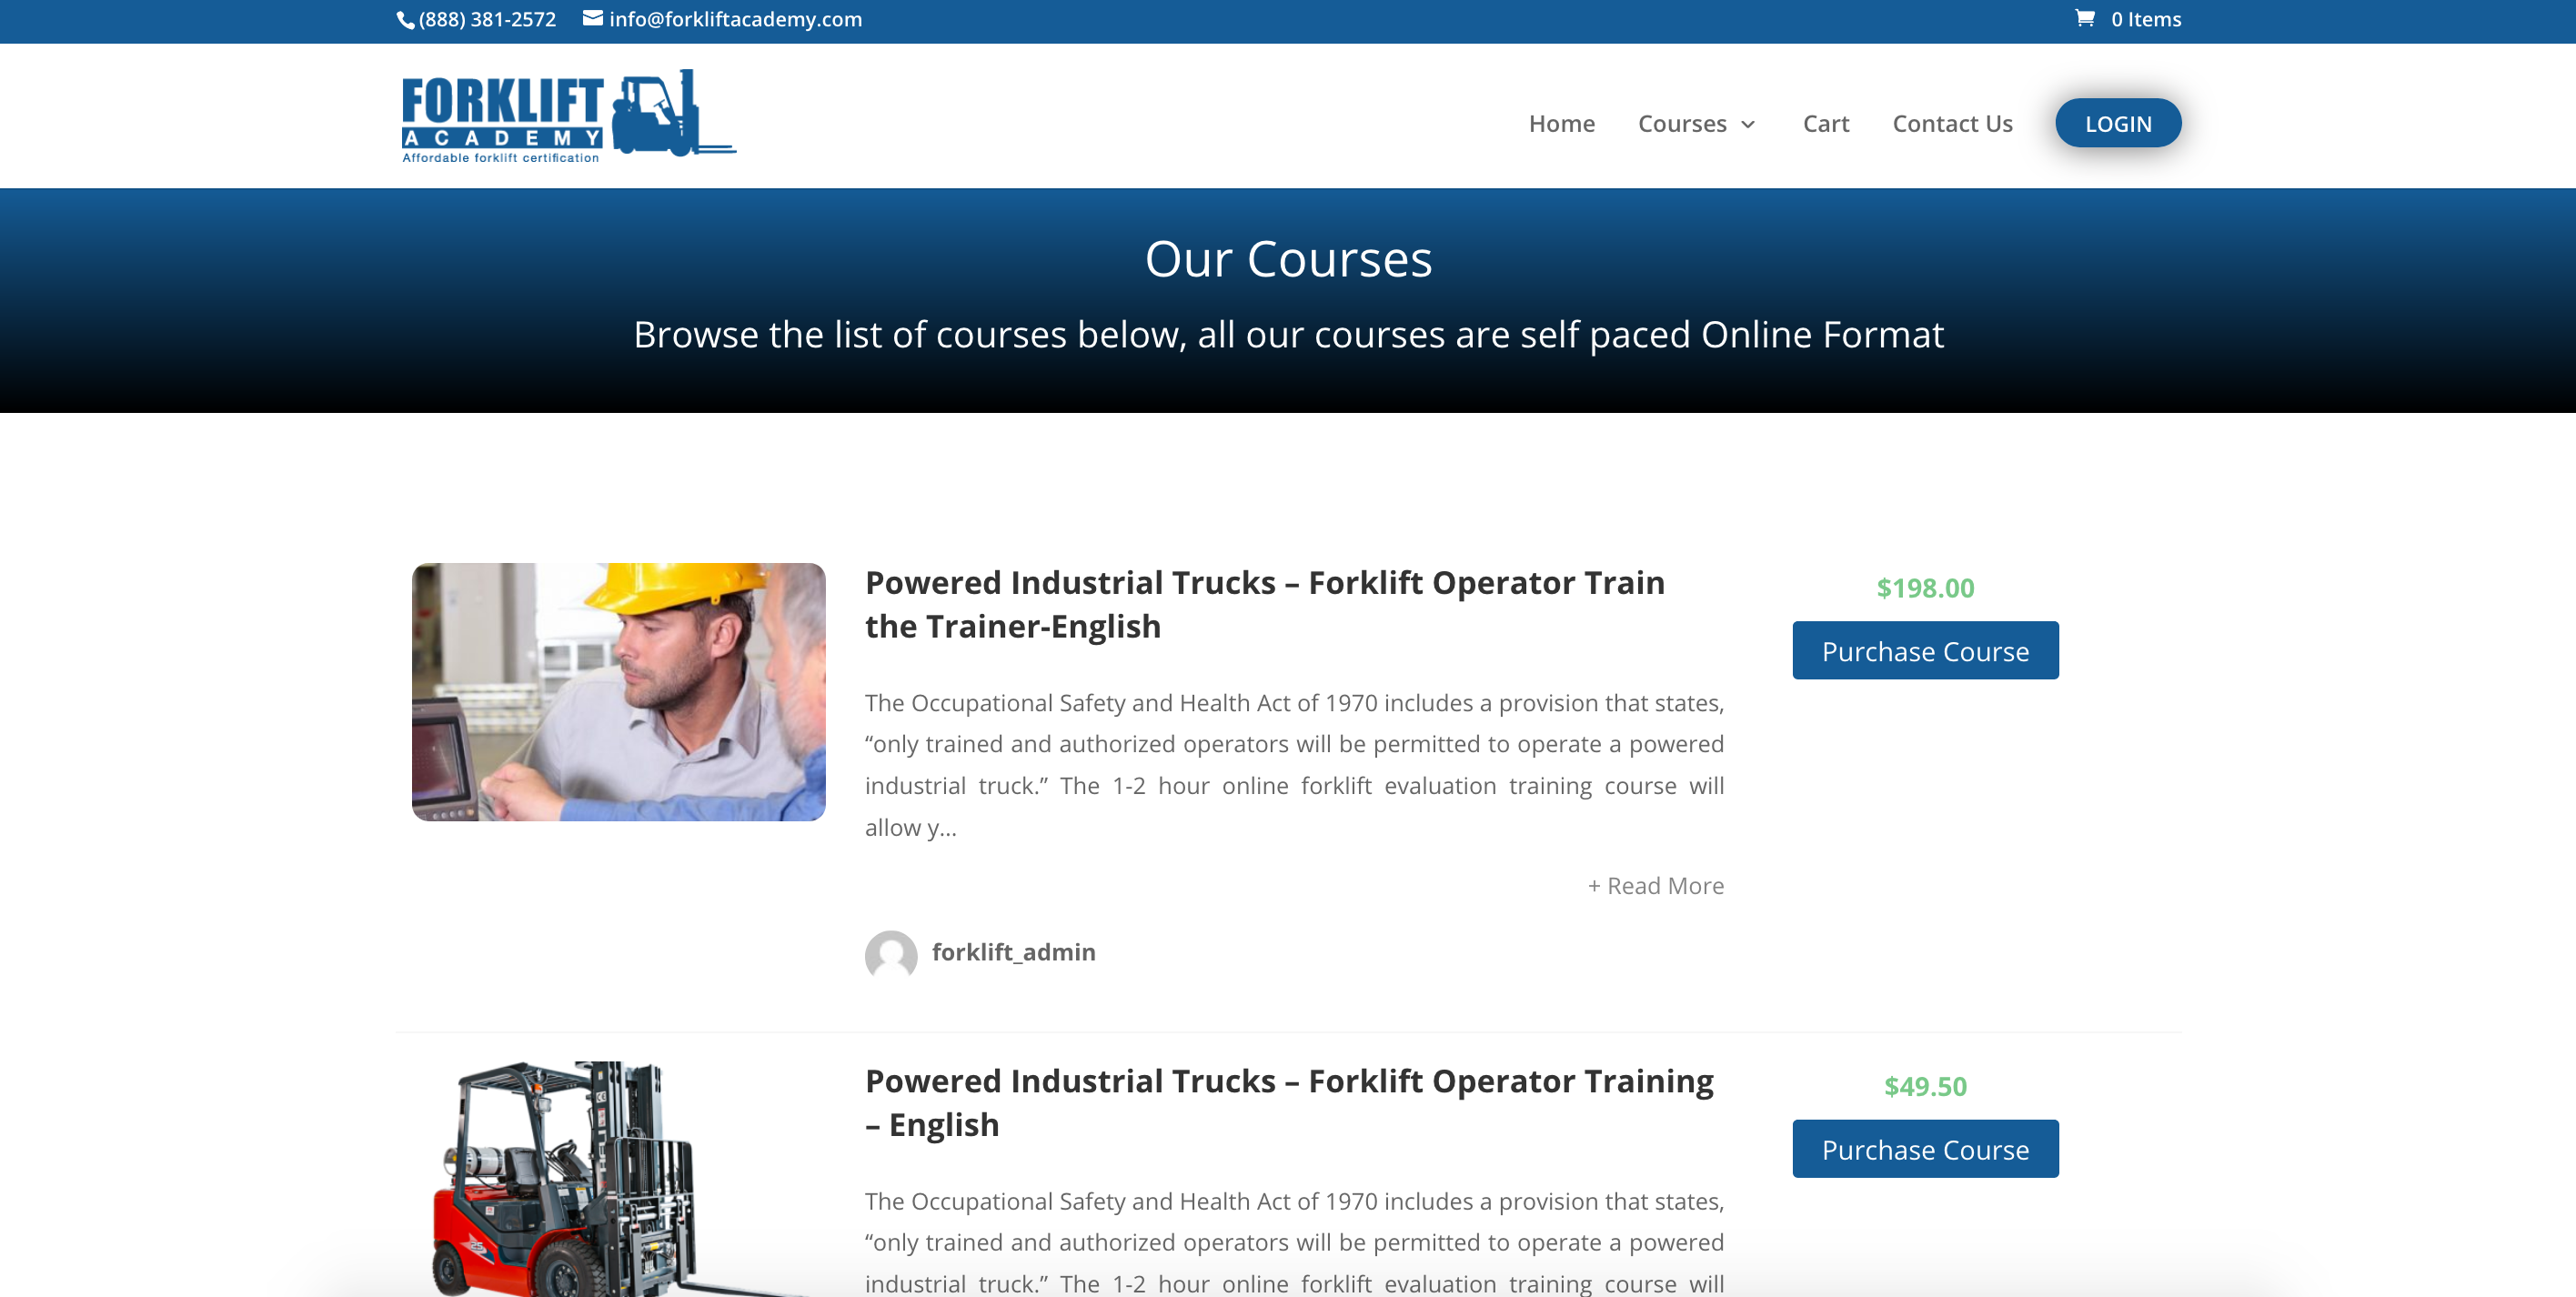 Forklift academy company website sells safety training online courses with LMS e-learning eLearning platform